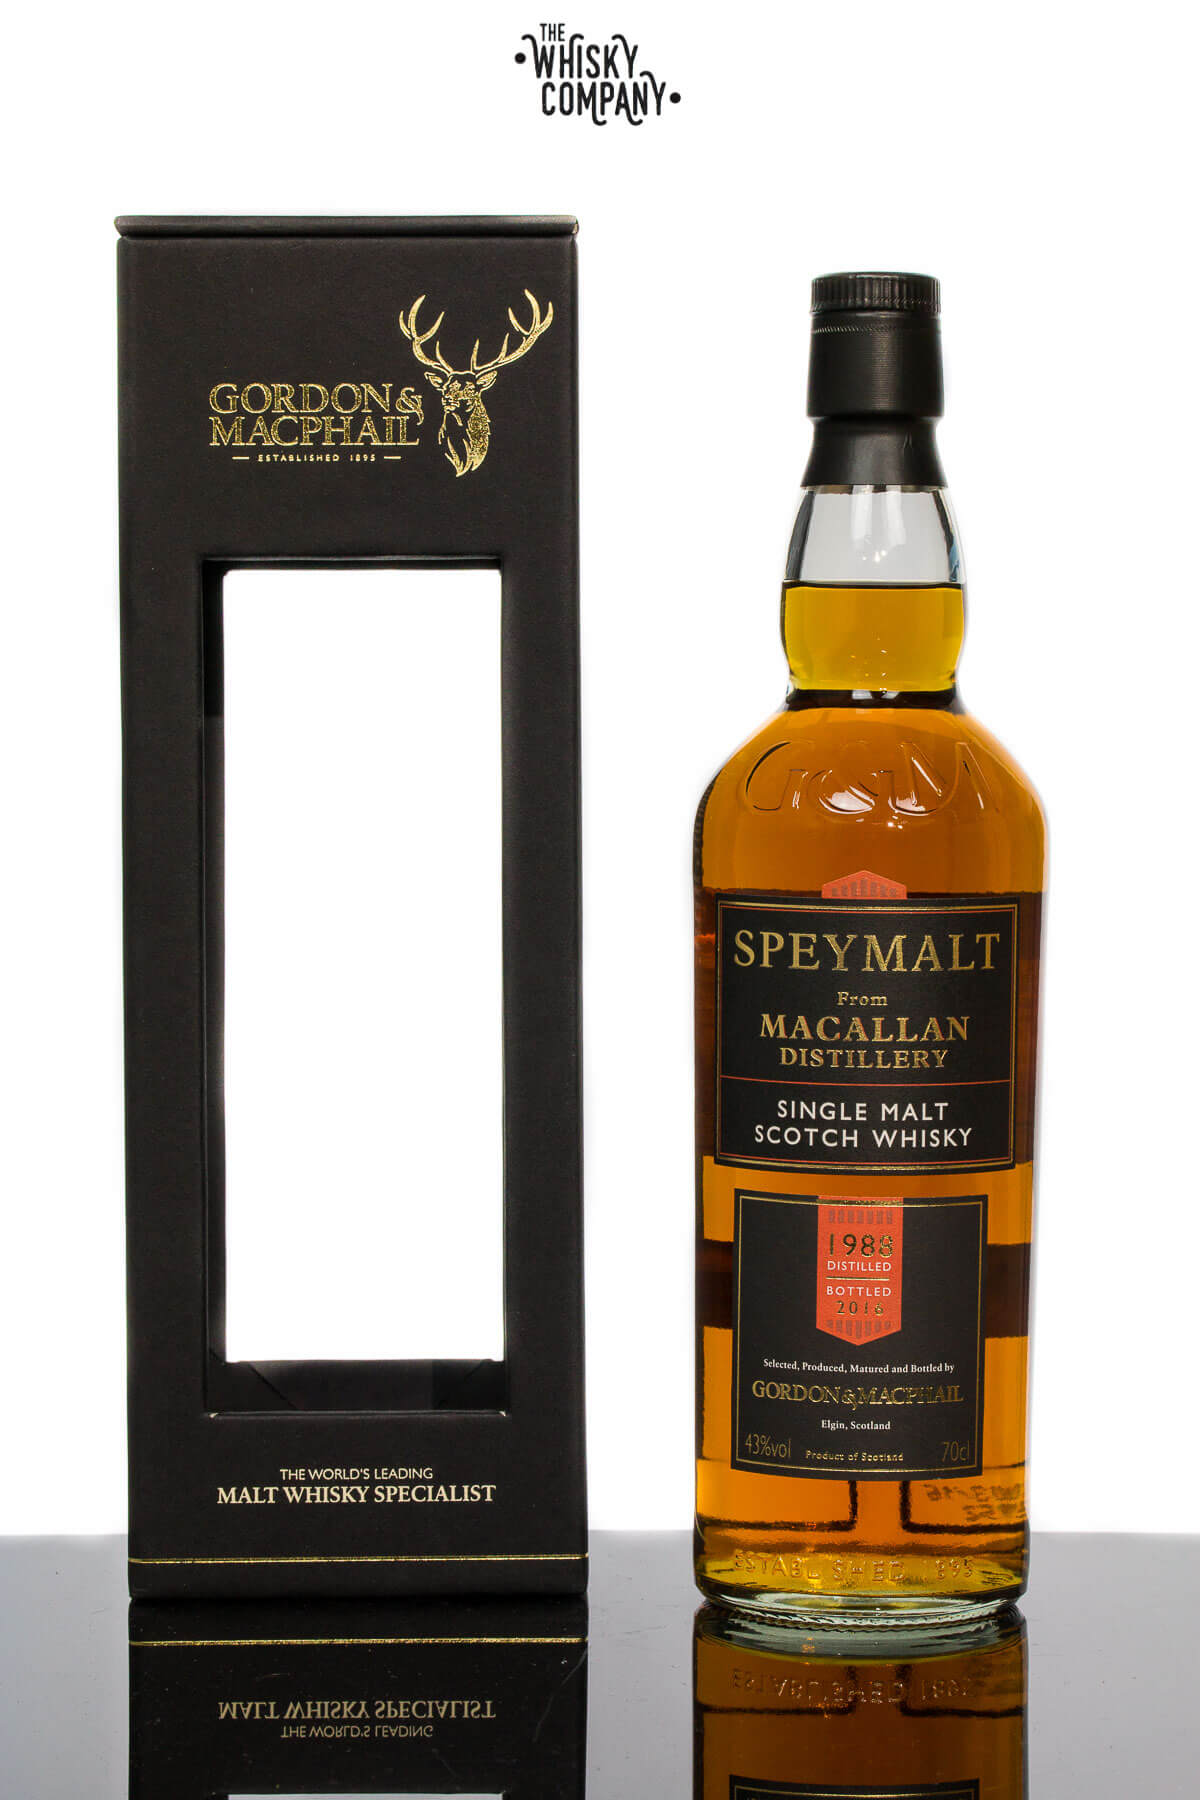 Gordon & MacPhail Macallan 1988 Speyside Single Malt Scotch Whisky (700ml)